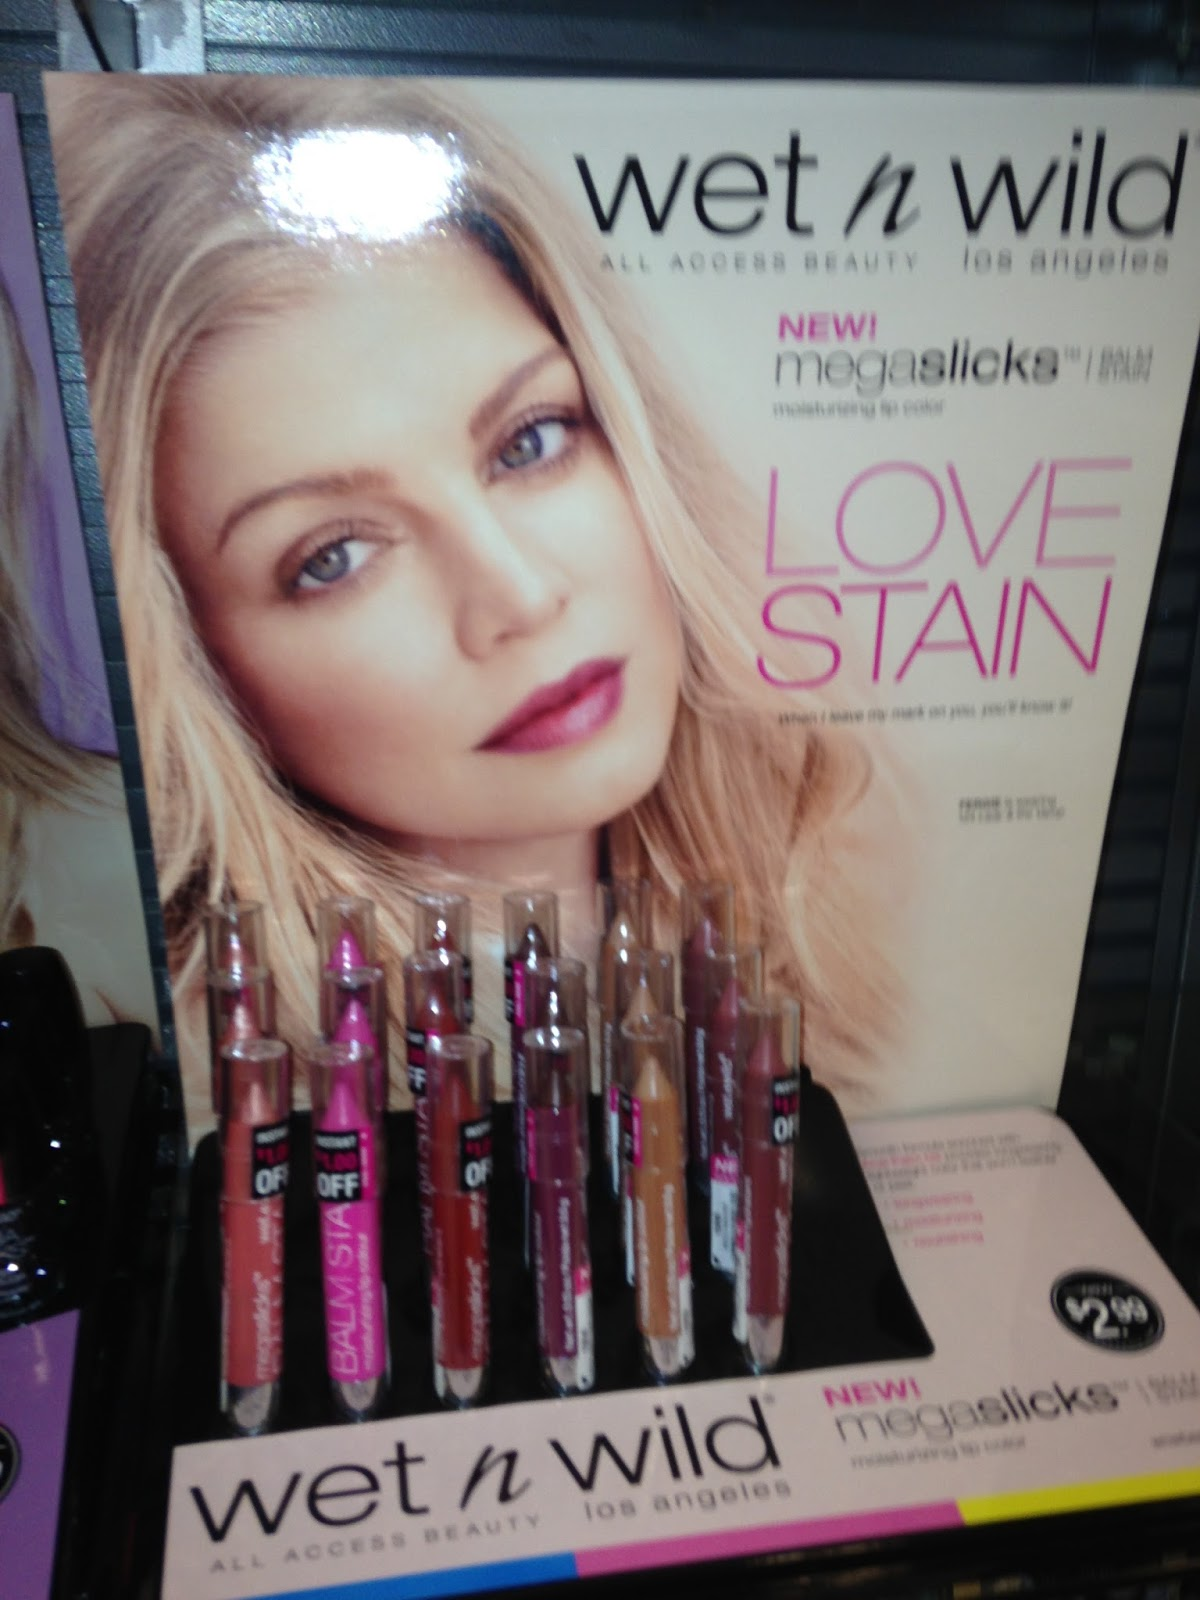 Wet N Wild, Mega Slicks, megaslicks, Love stain, lips